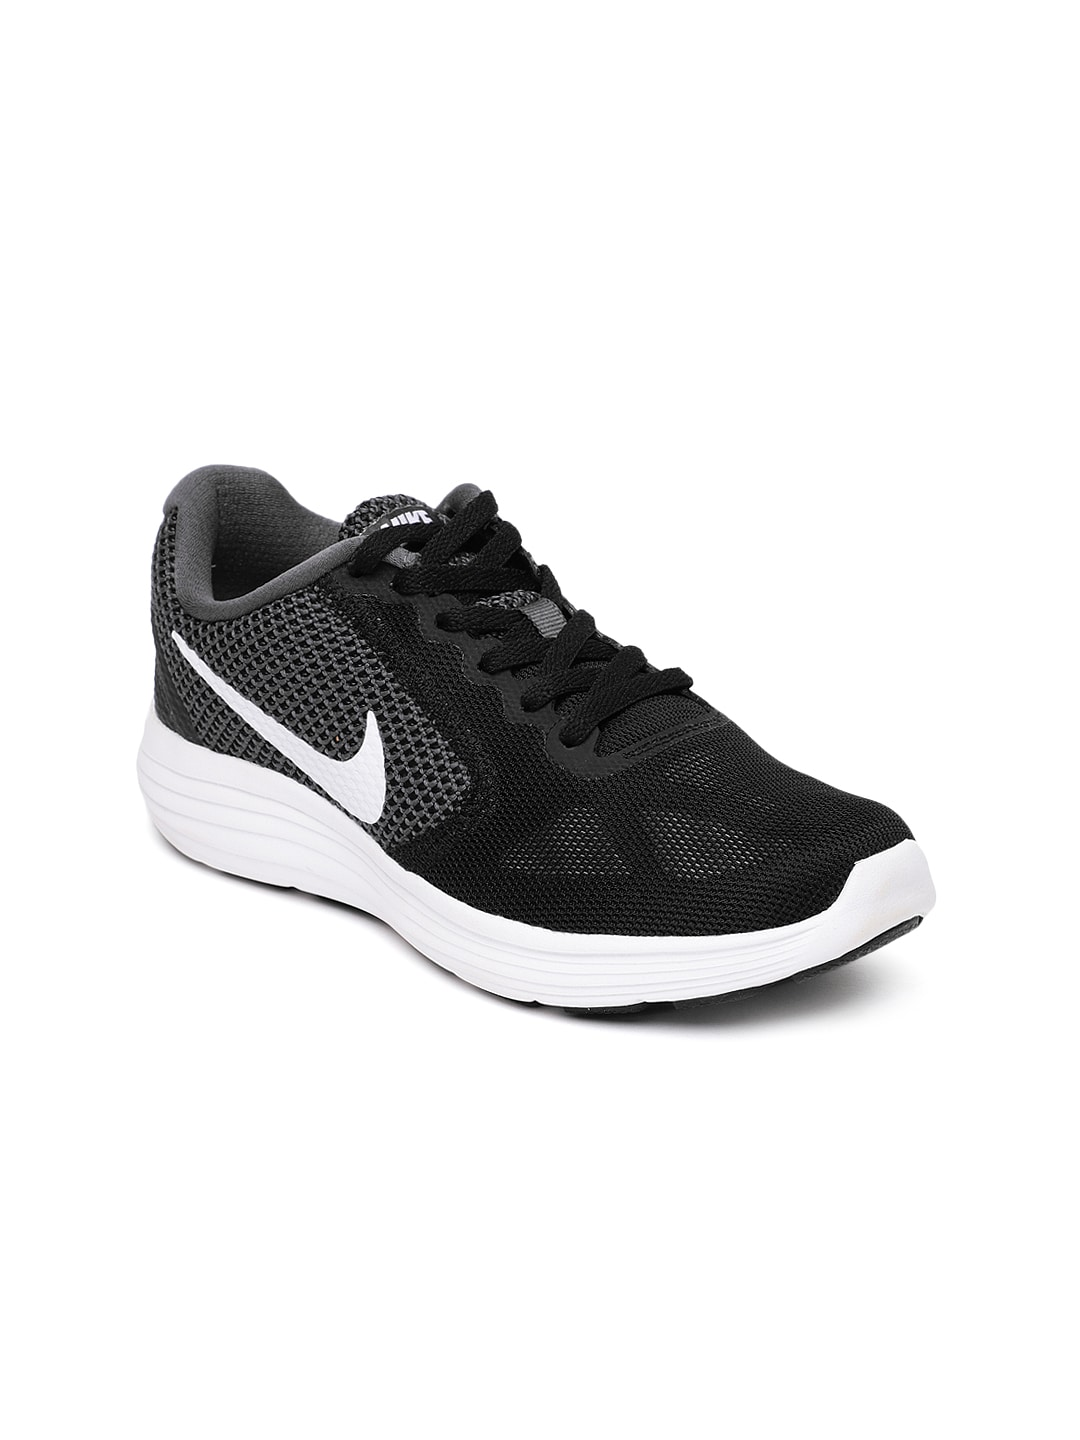 9feb8d5514 Buy Nike Women Pink DOWNSHIFTER 7 Running Shoes - Sports Shoes for ...